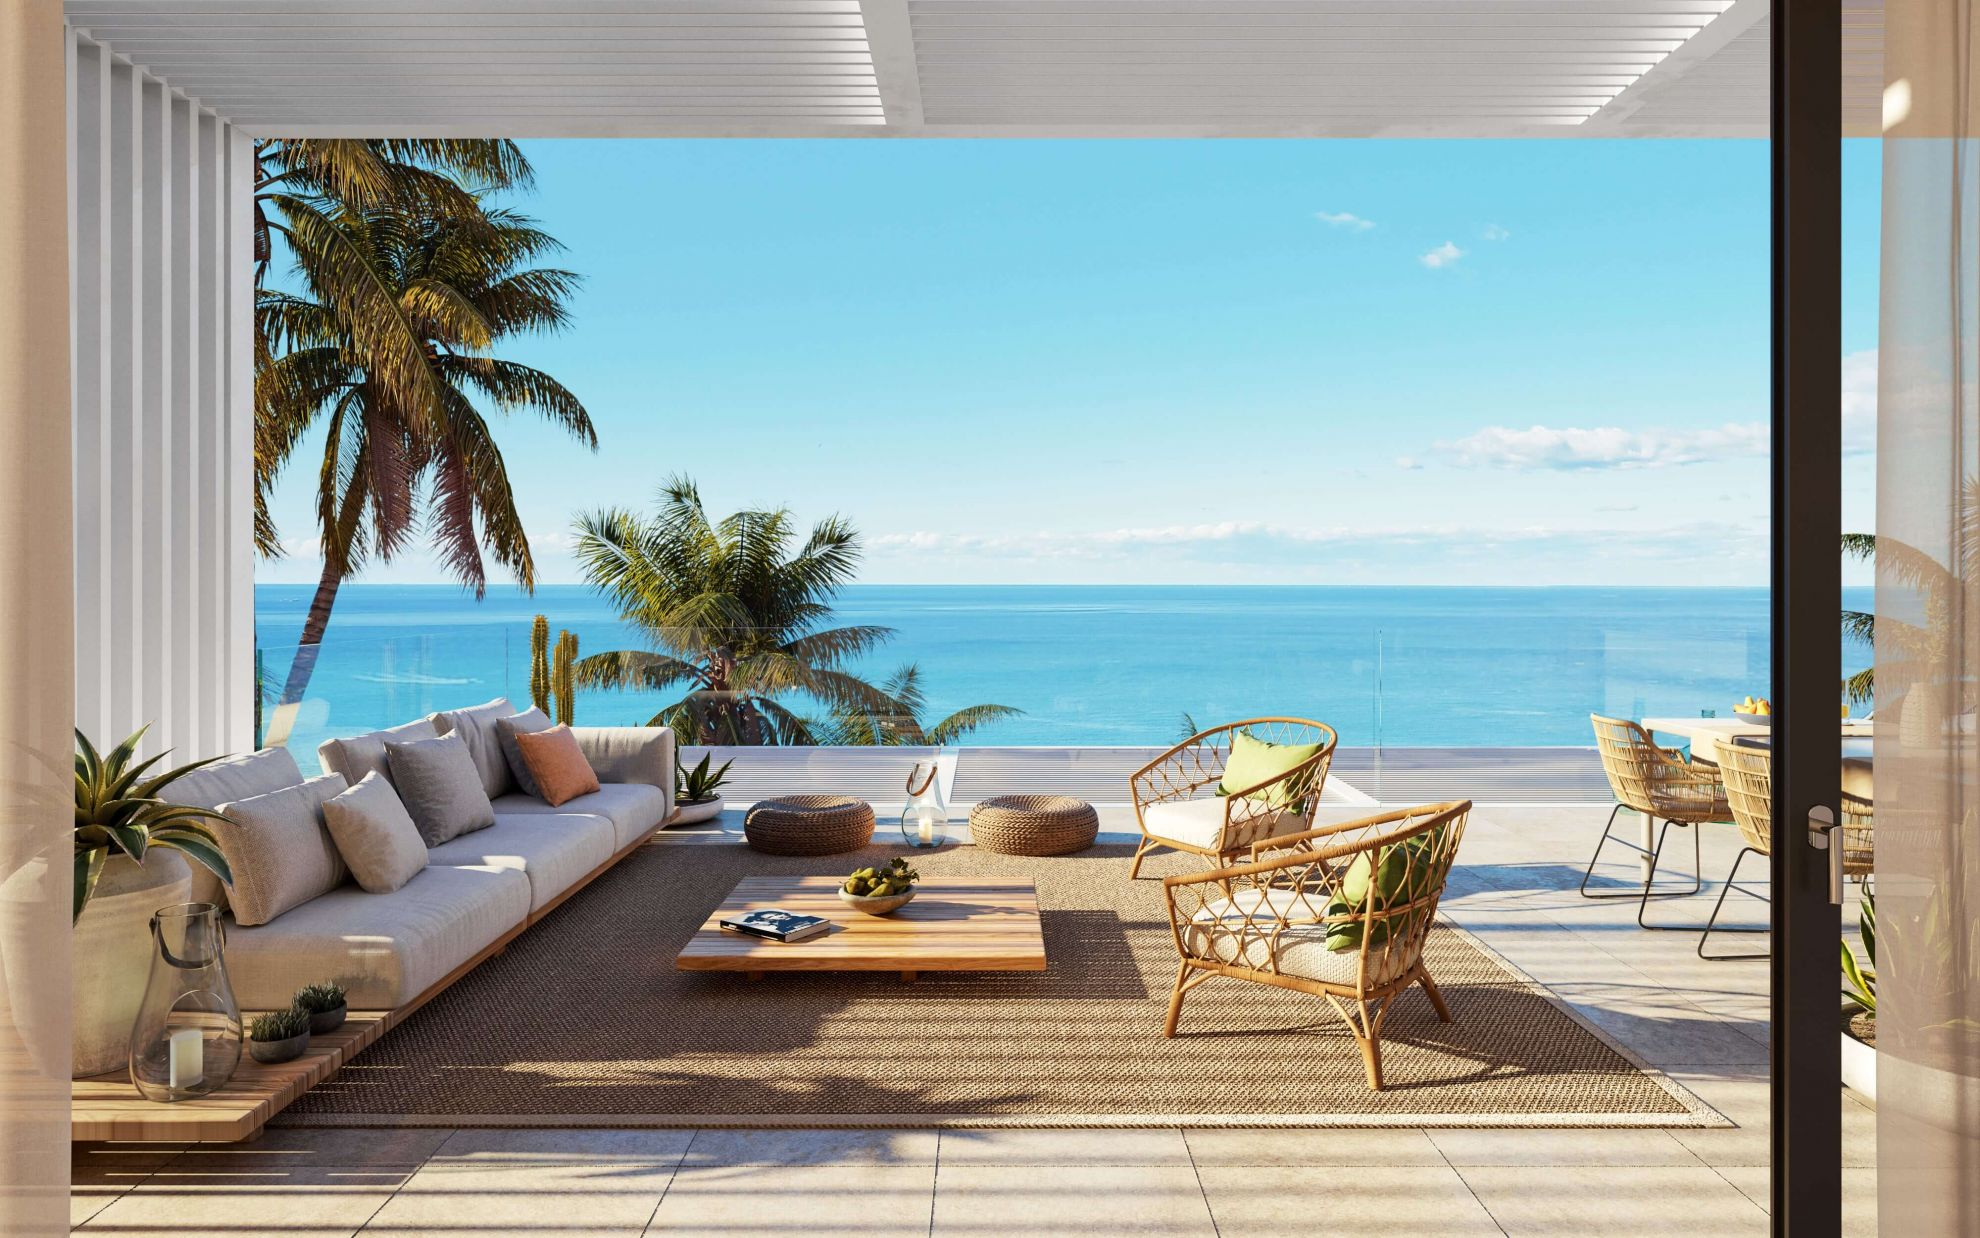 2 and 3 bedroom penthouse-style apartments with big terraces overlookg the sea. House 26 13